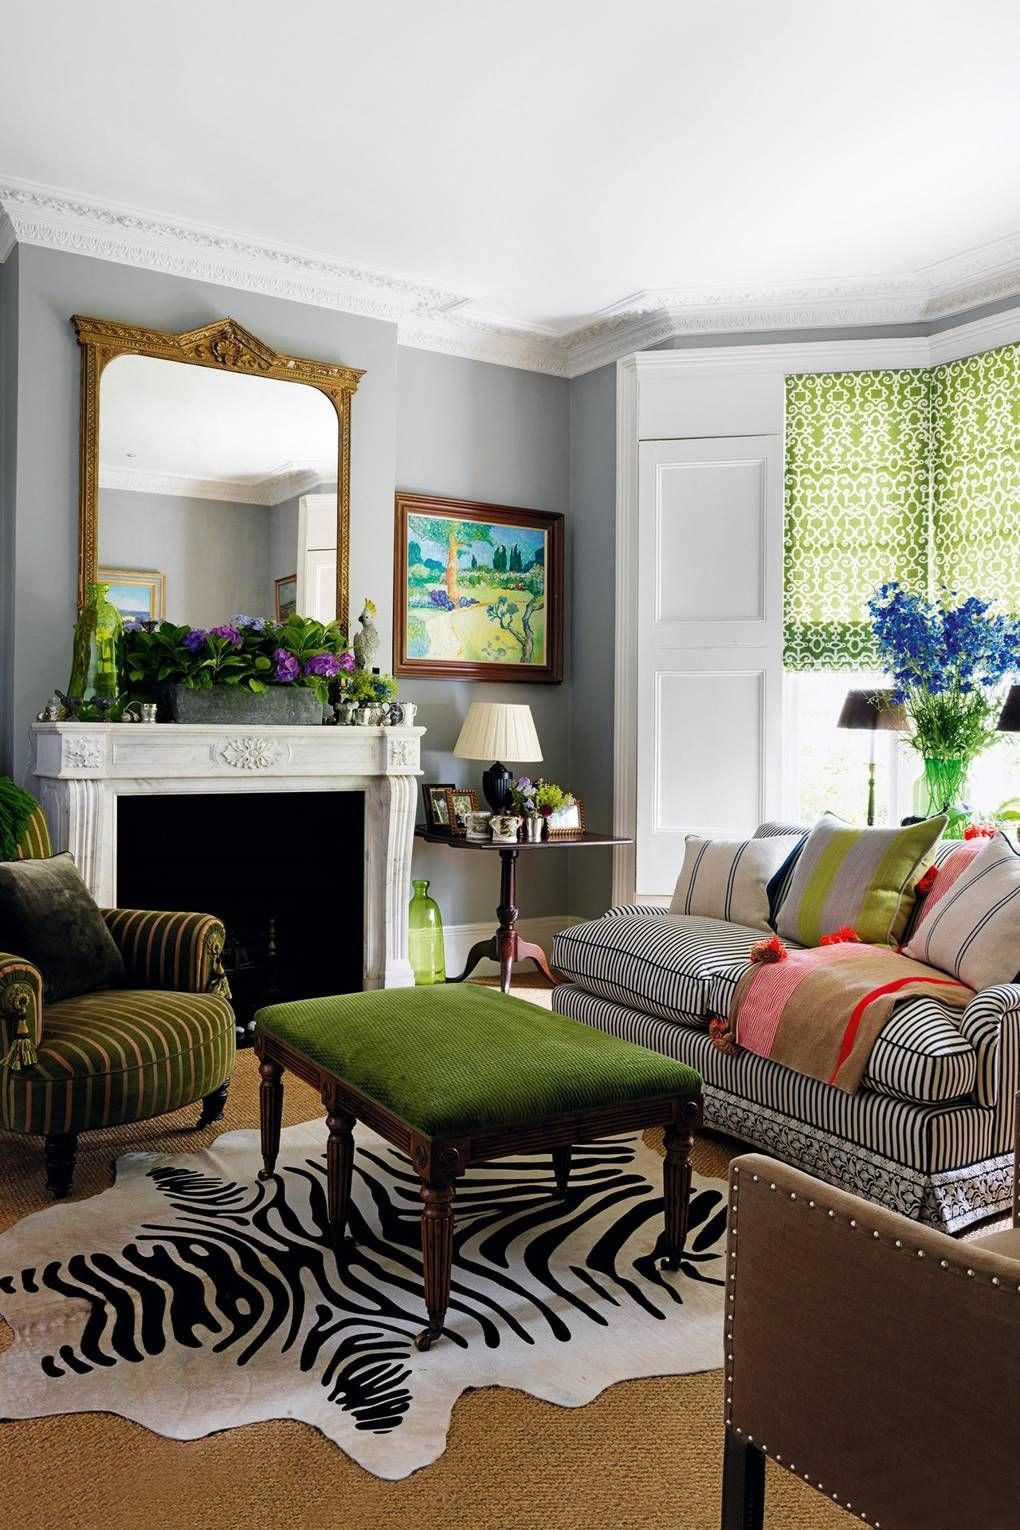 Read More About Living Room Ideas If You Pick Furniture Online